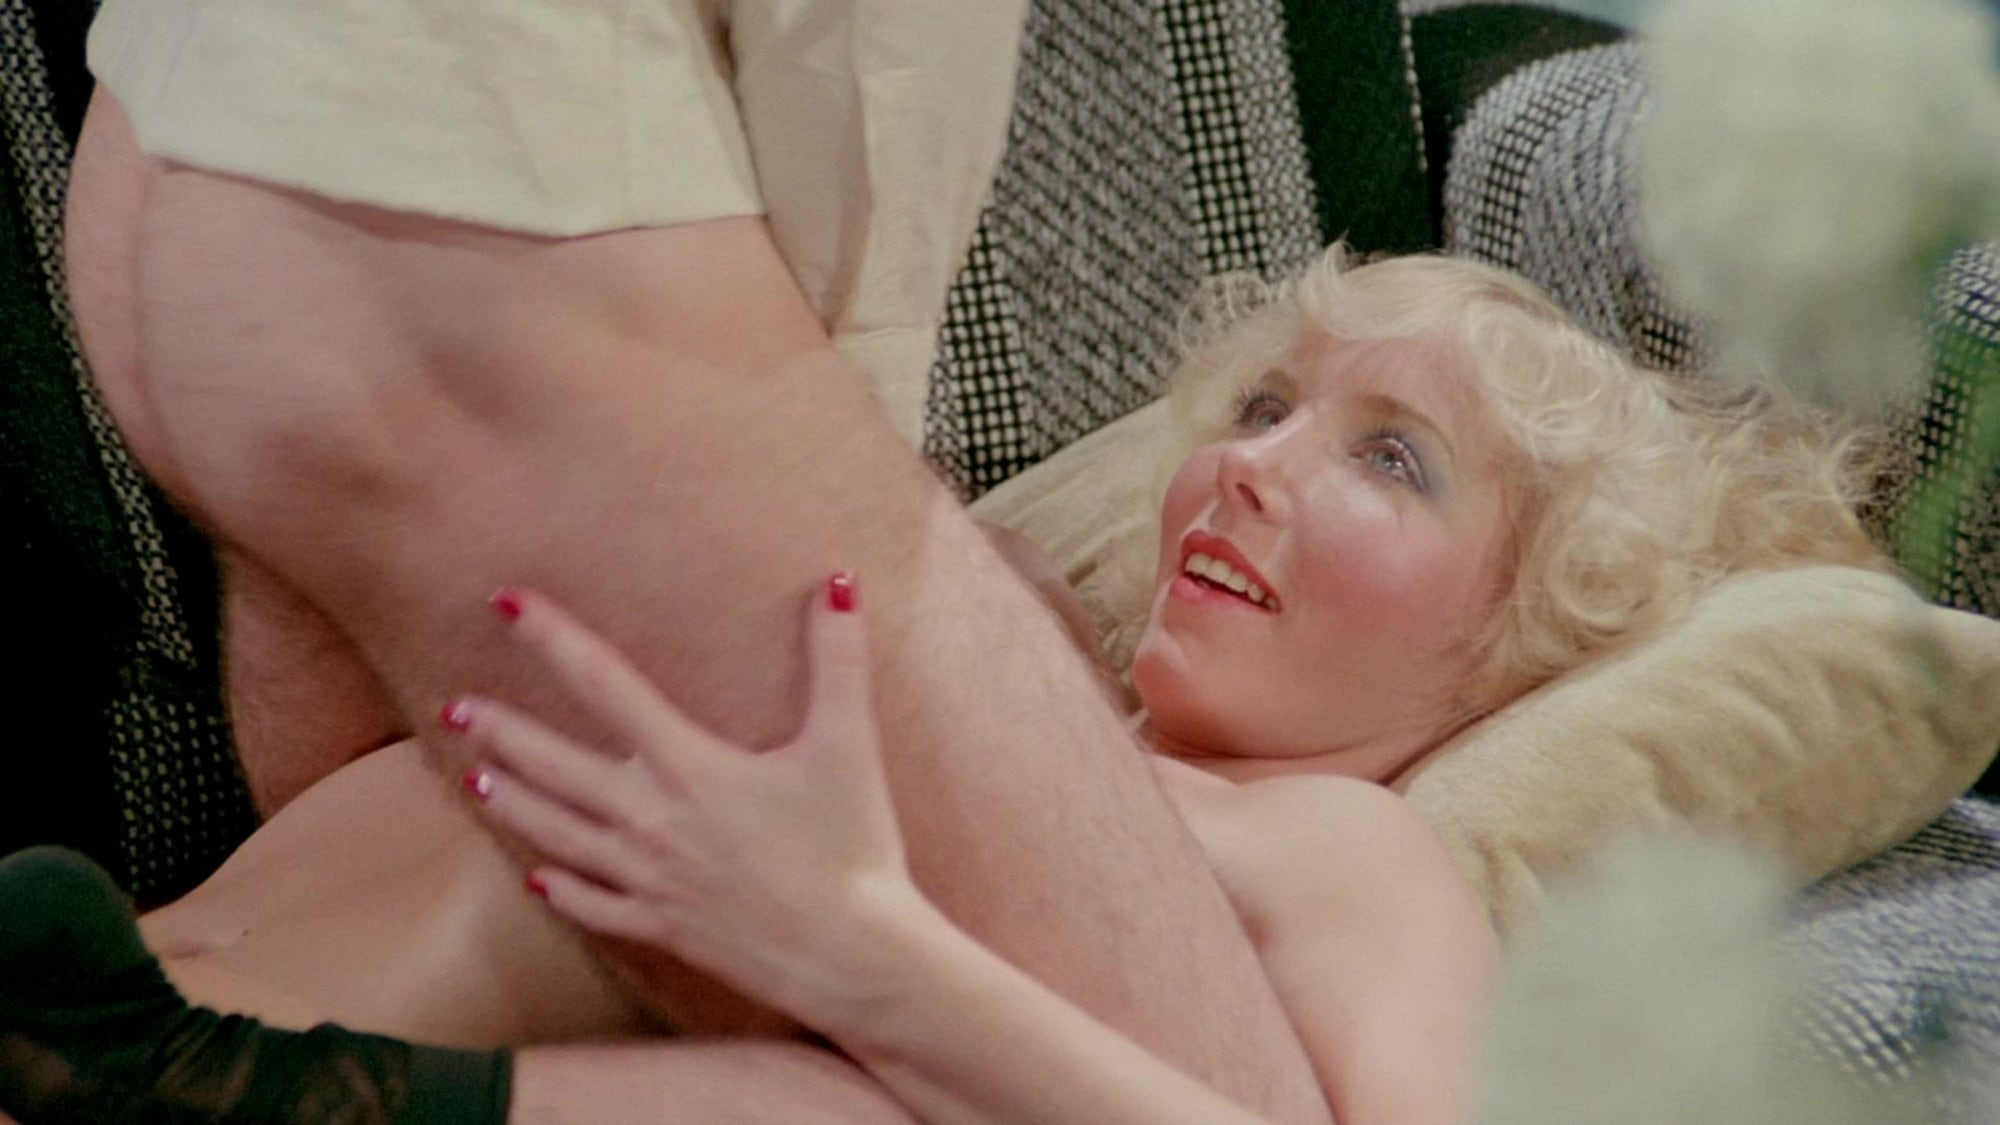 Top Rated Classic 24 - 4K Restoration, Hd Porn F8 Xhamster-3144